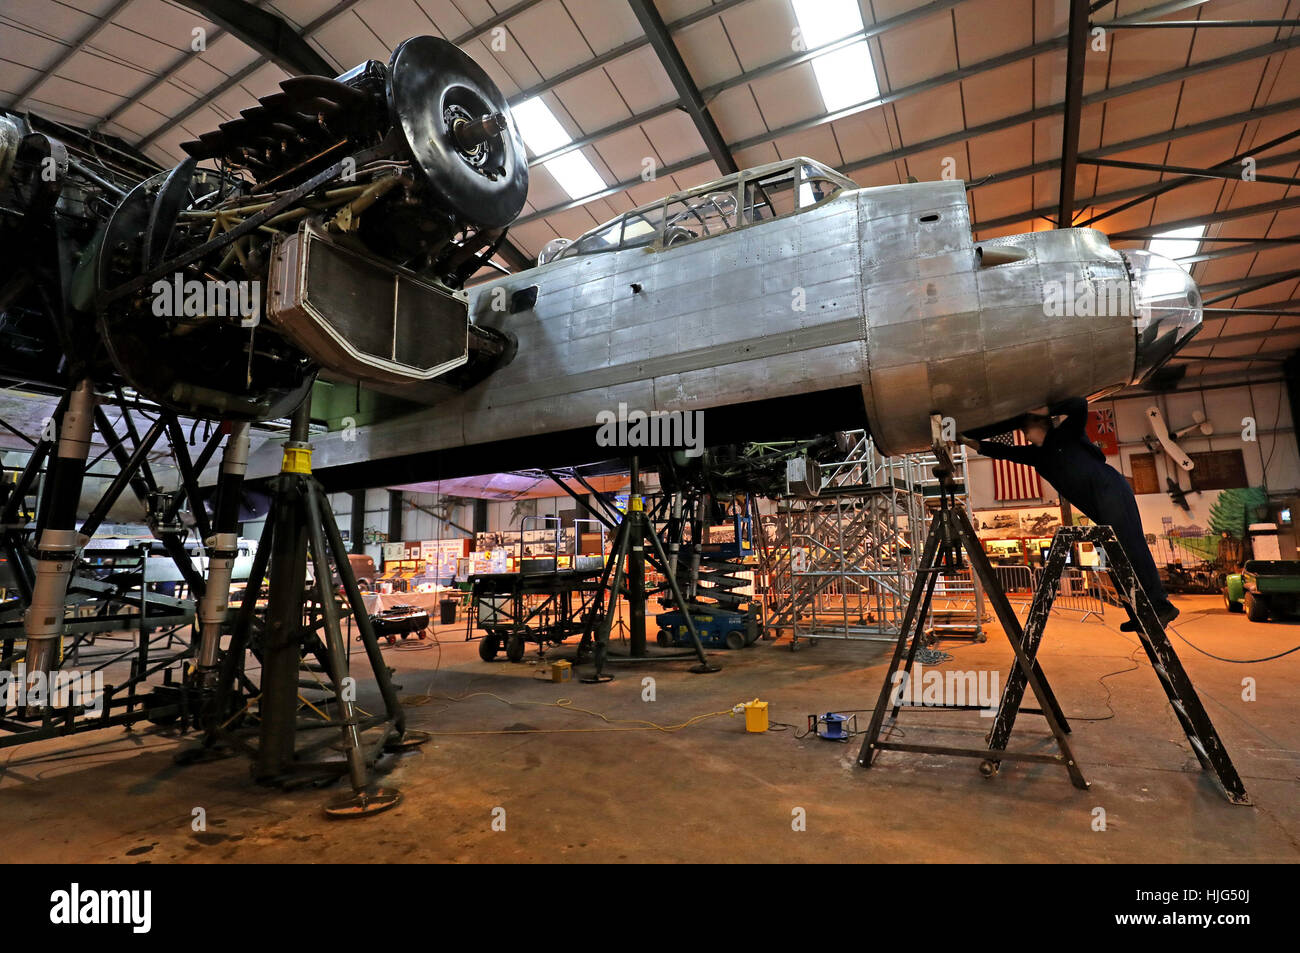 Roy Lemmon works on the Avro Lancaster NX611 'Just Jane' as restoration works continue on the aircraft at - Stock Image